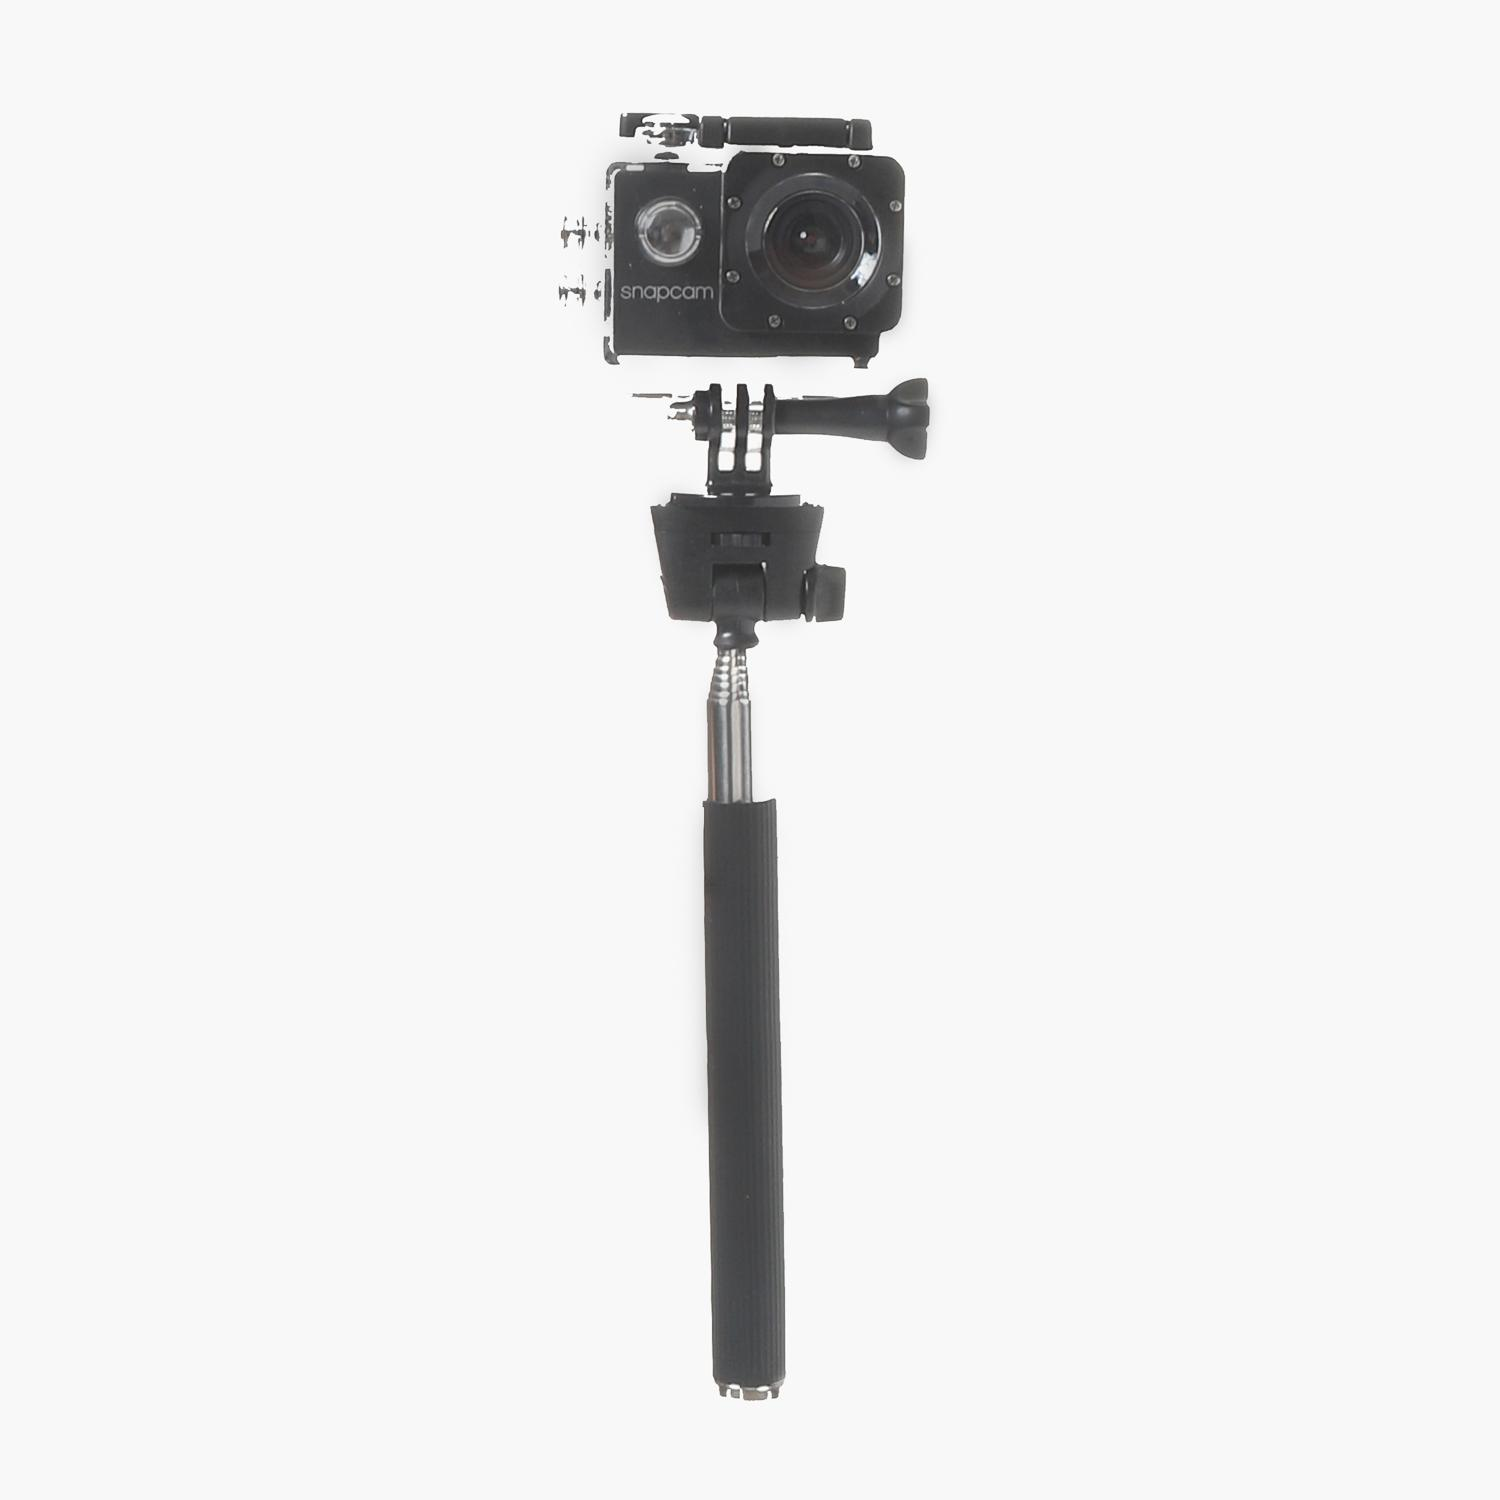 Snap Cam Camera With Waterproof Case And Monopod (black) By The Sm Store.